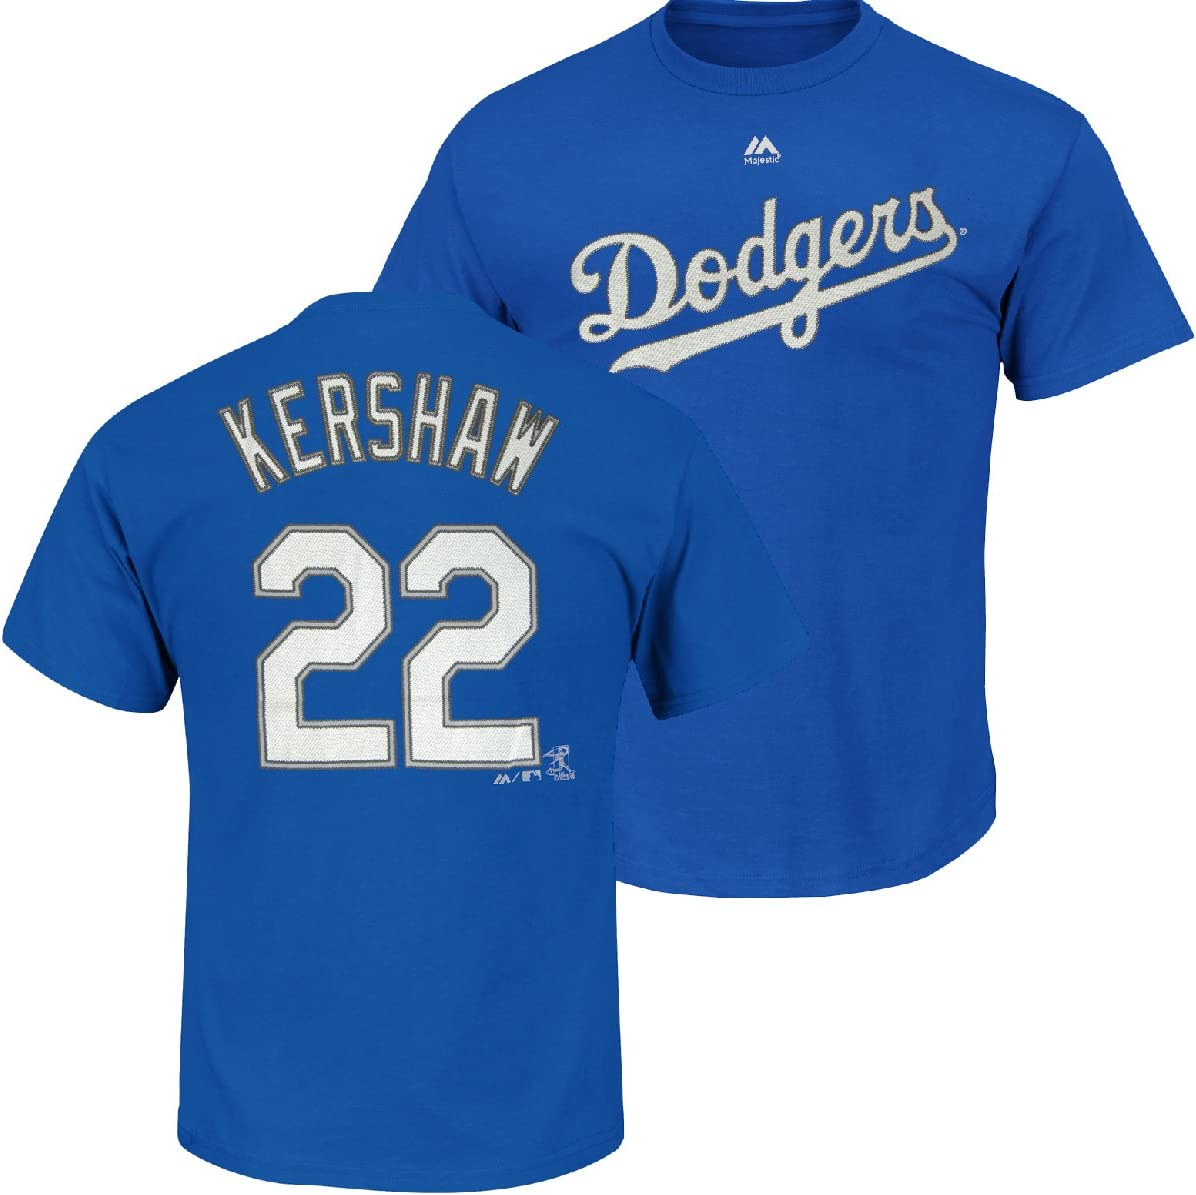 Majestic Clayton Kershaw Los Angeles Dodgers Blue Youth Jersey Name and Number T-shirt